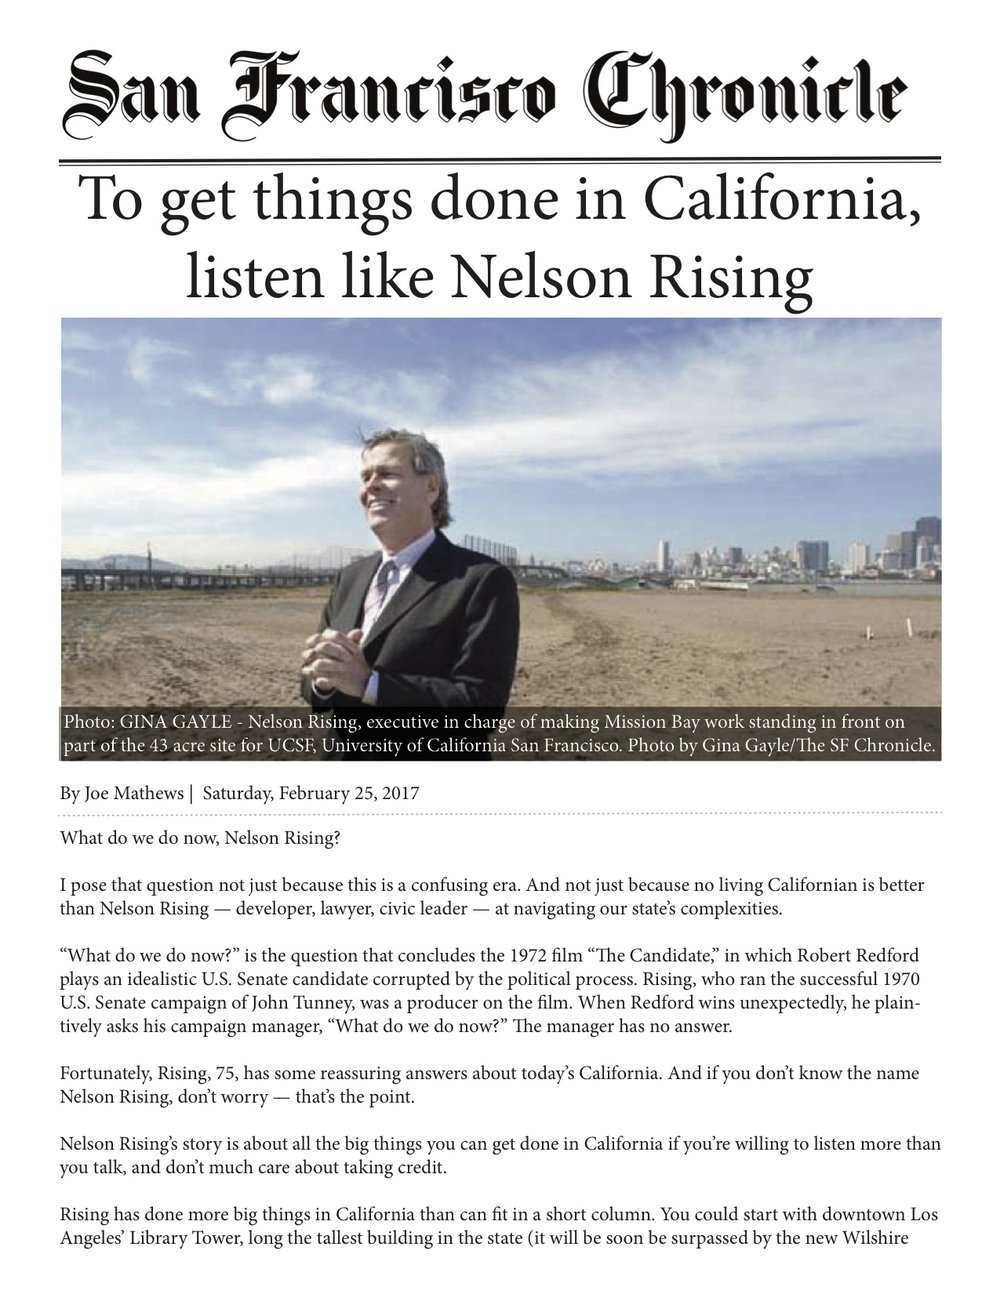 SFChronicle_NelsonRising.jpg